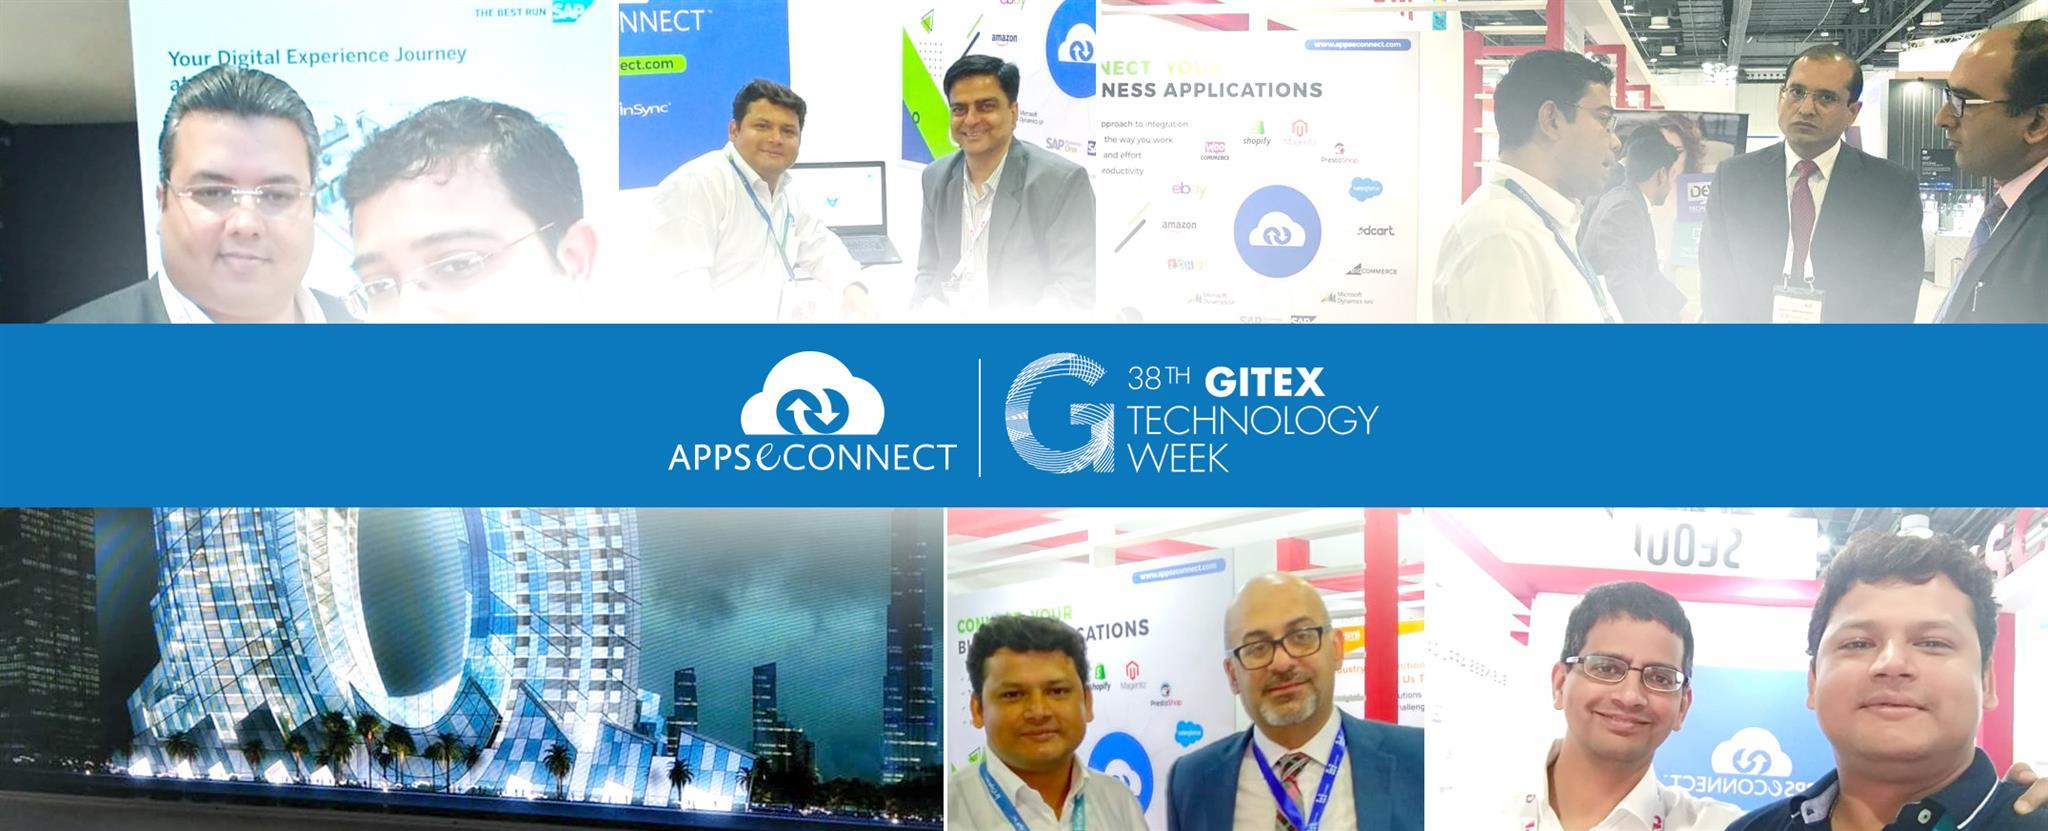 APPSeCONNECT-Exhibited-at-Gitex-Technology-Week-2018-1